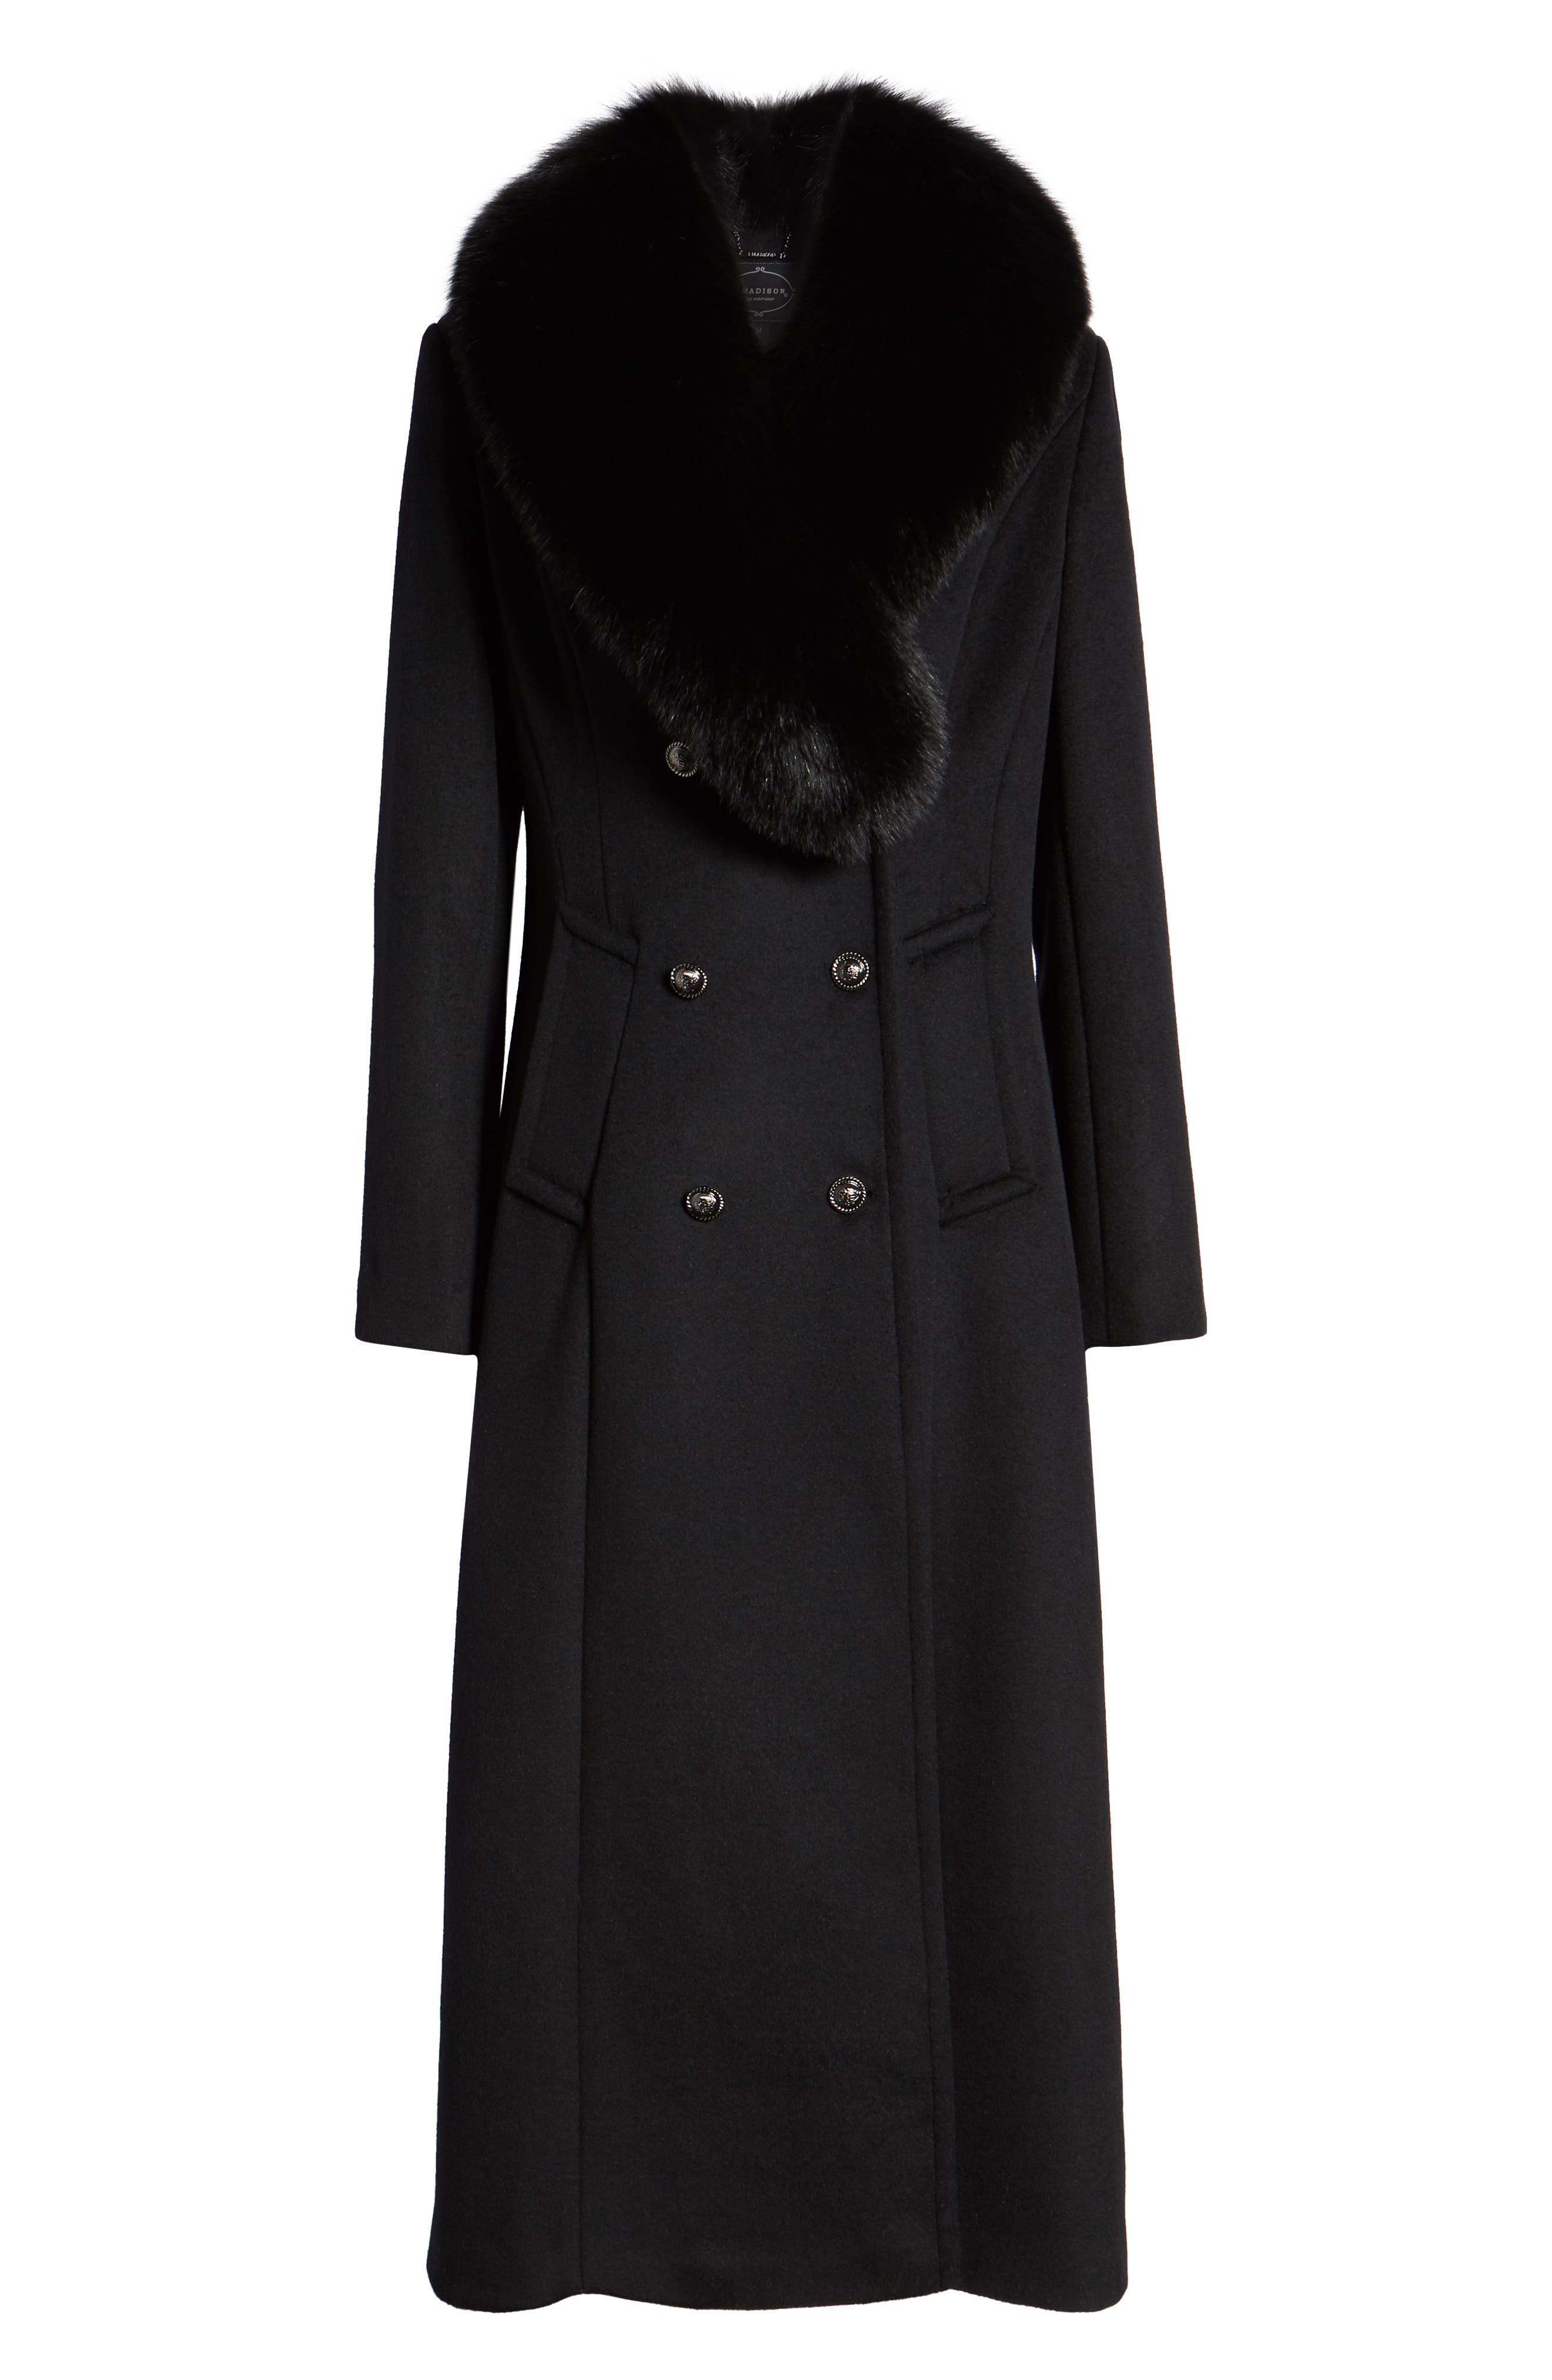 1 MADISON,                             Double Breasted Military Wool Coat with Genuine Fox Fur Shawl,                             Alternate thumbnail 6, color,                             BLACK